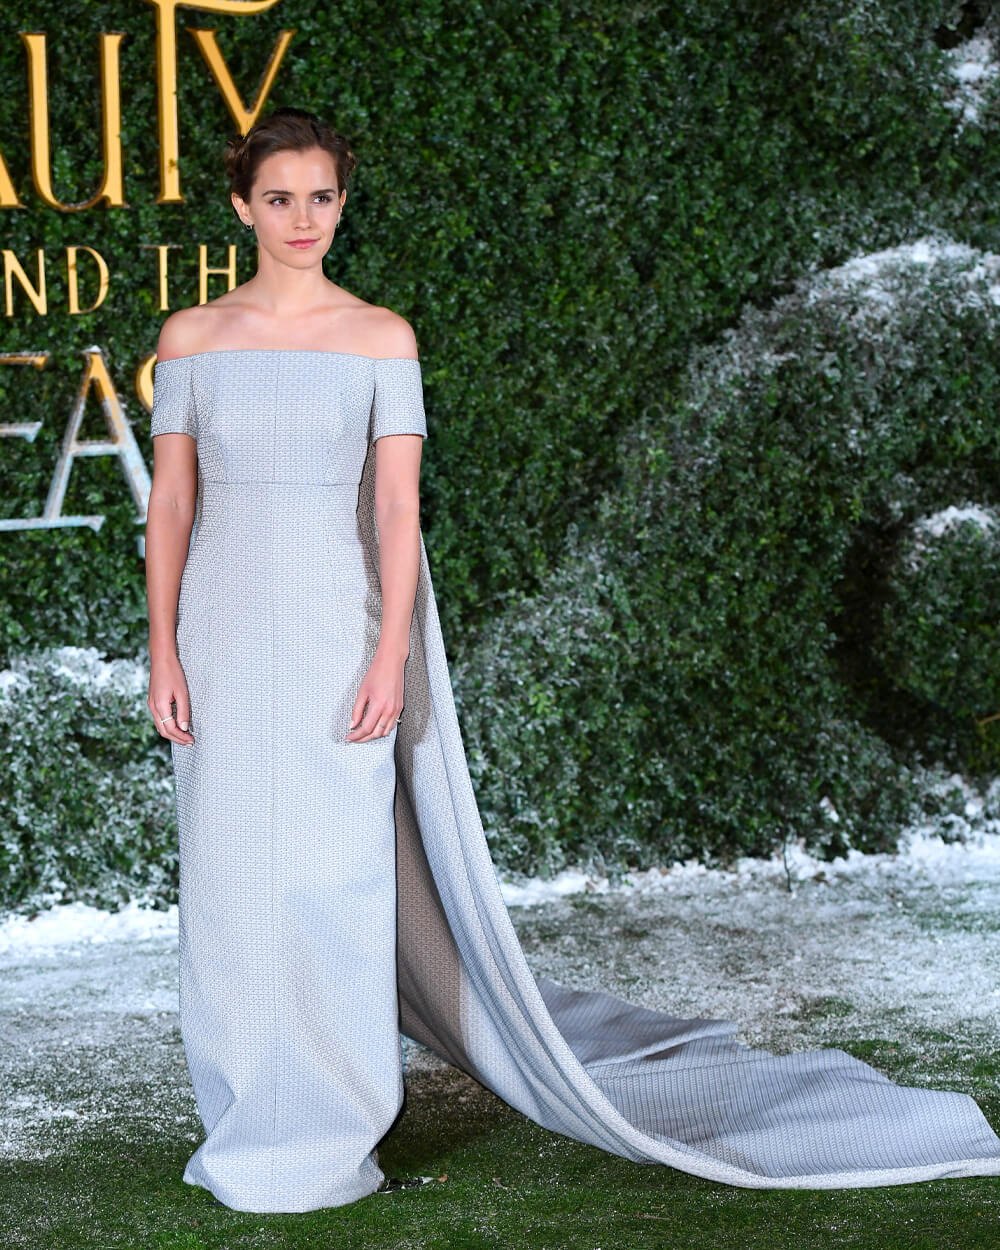 Emma Watson wearing Emilia Wickstead gown for Beauty and the Beast